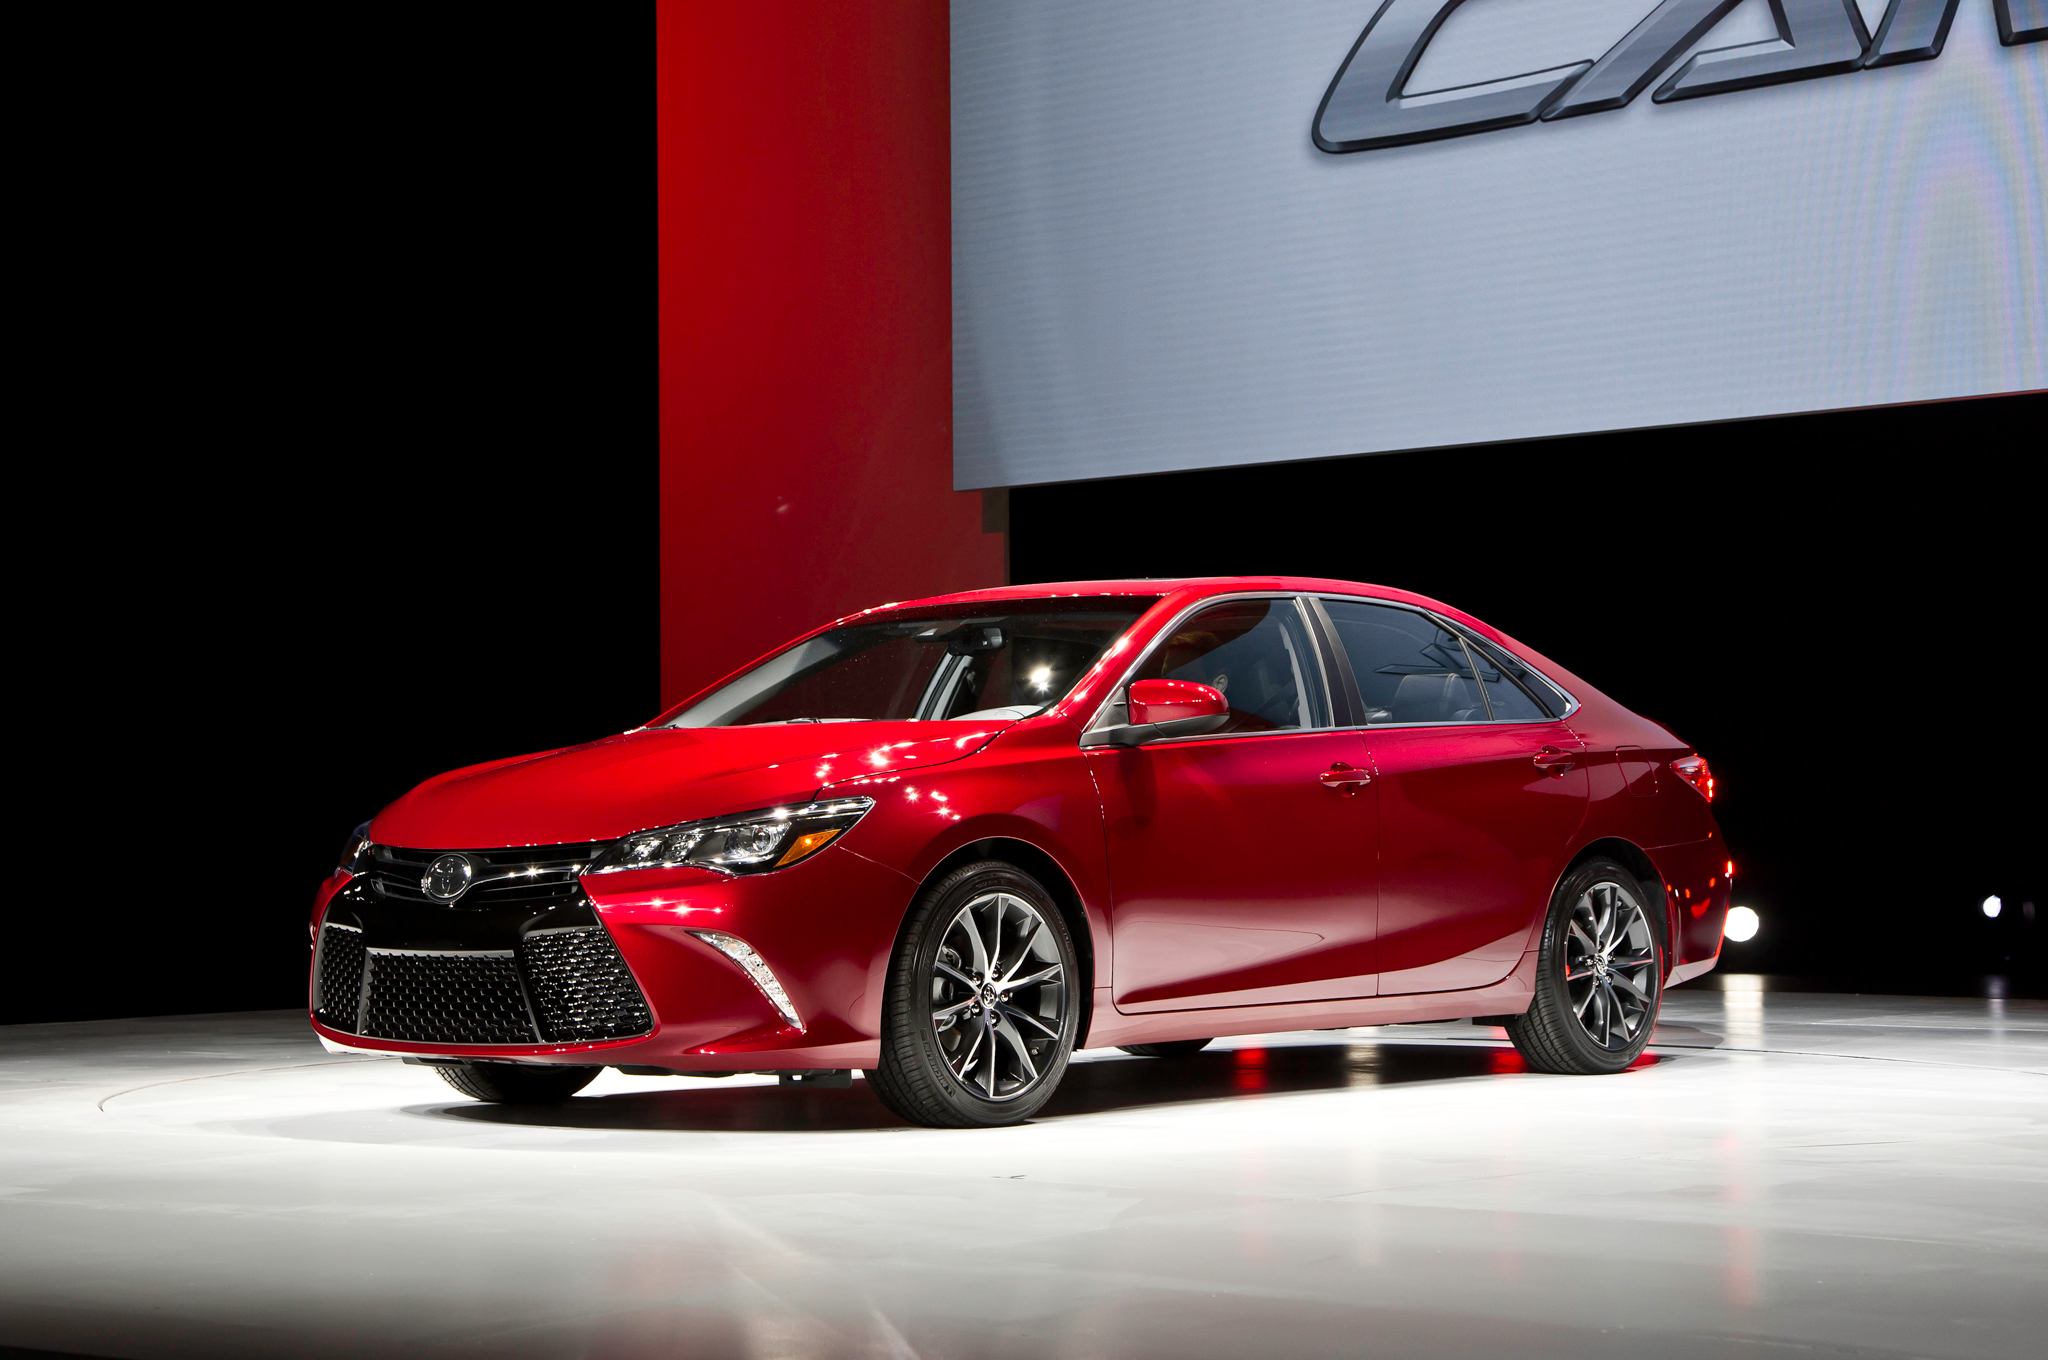 all new camry sport brand toyota for sale in ghana 2015 first look motortrend